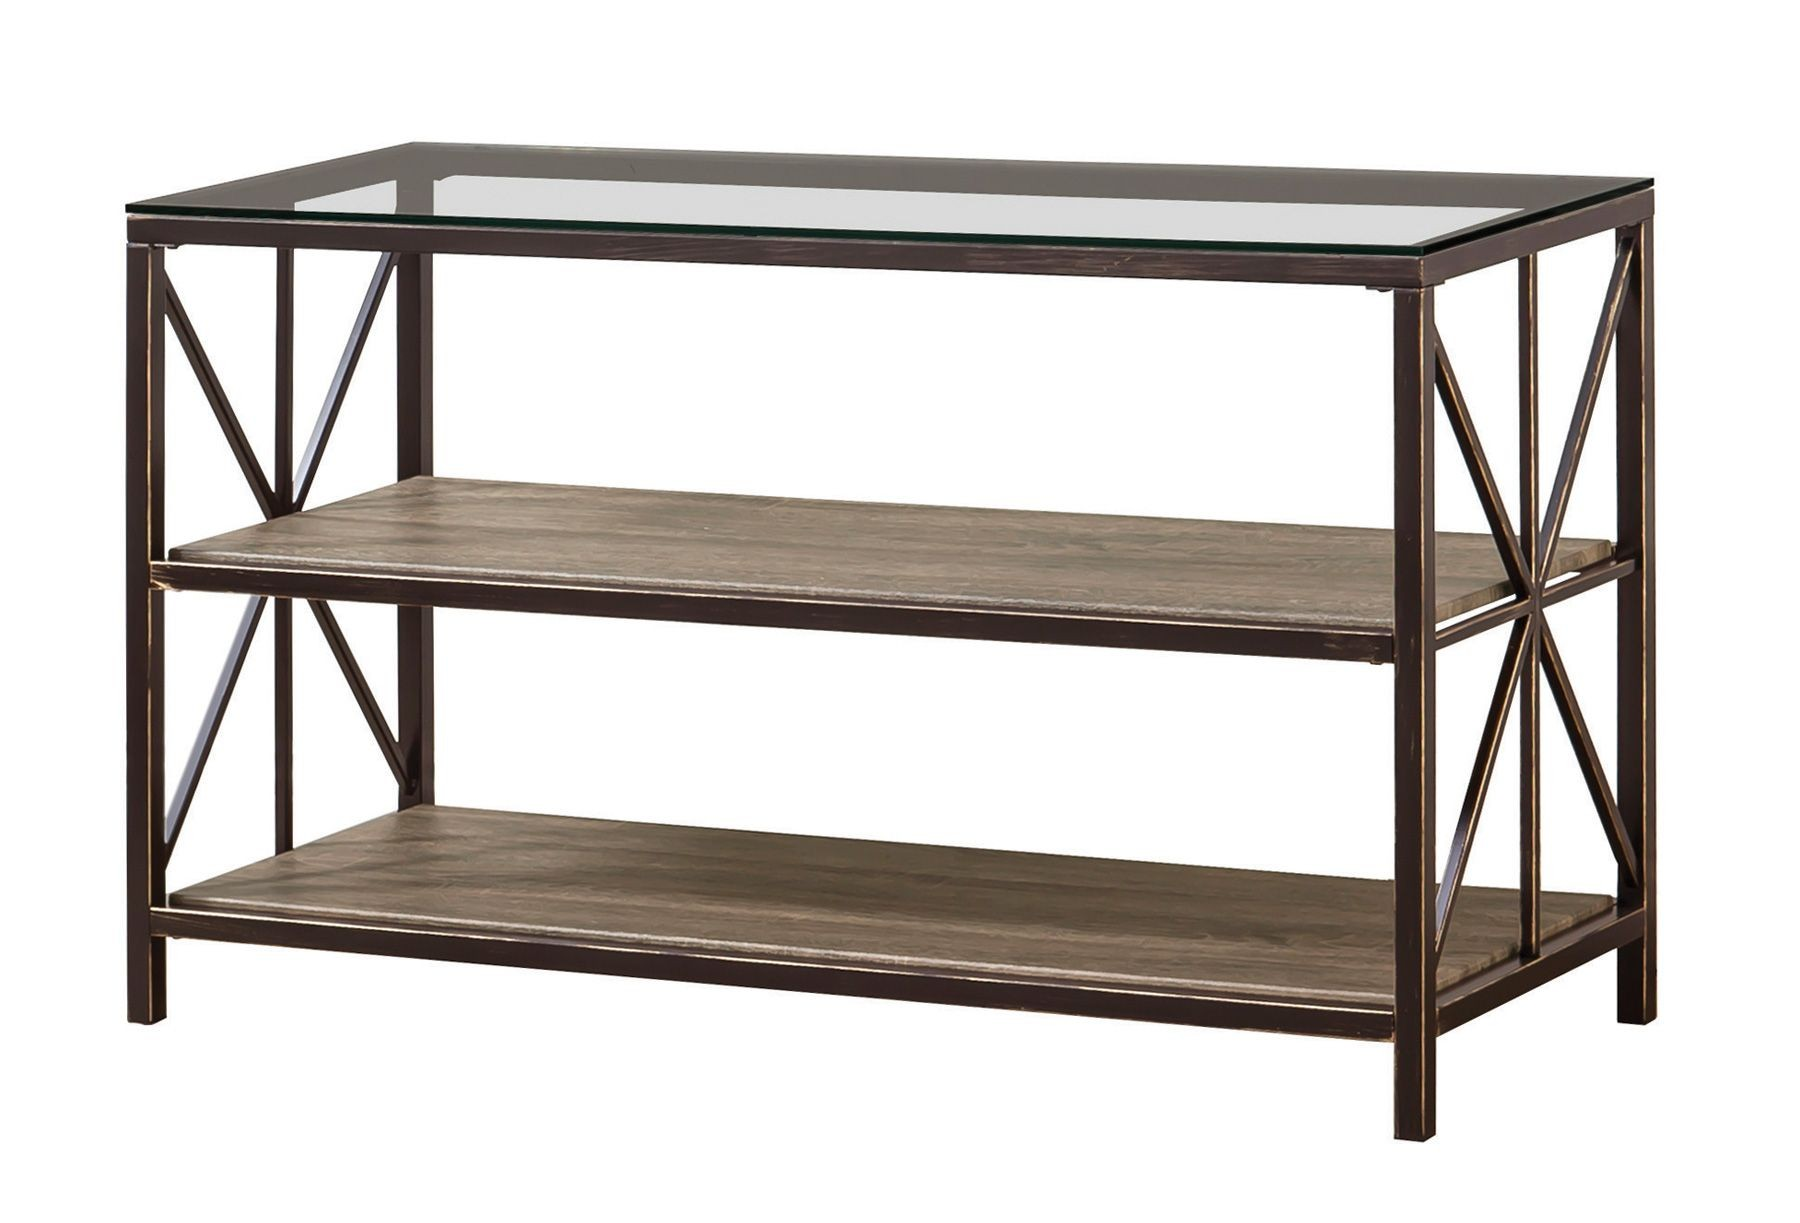 Avondale Metal Glass Sofa Table From Coaster 701399 Coleman Furniture